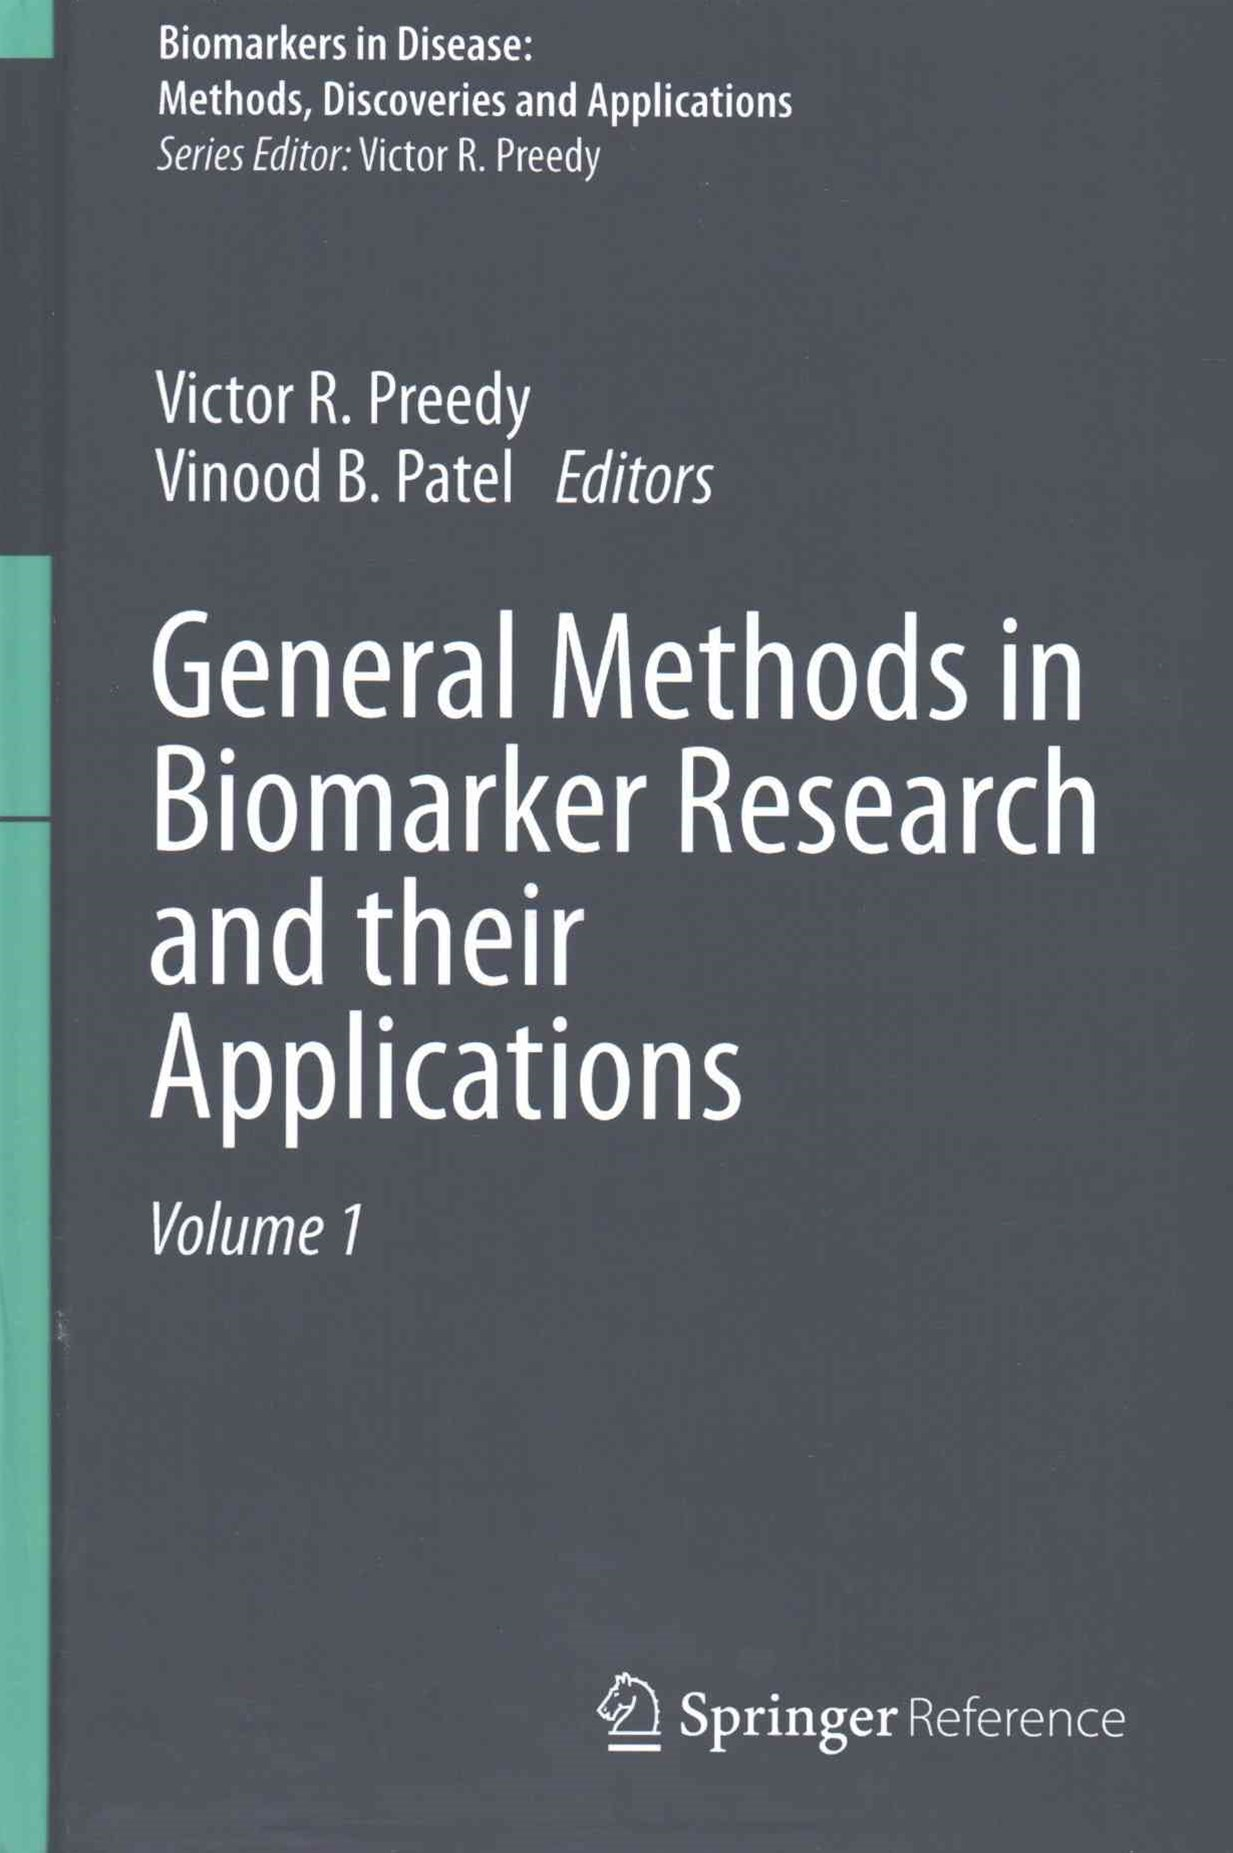 Biomarkers in Disease - Methods, Discoveries and Applications